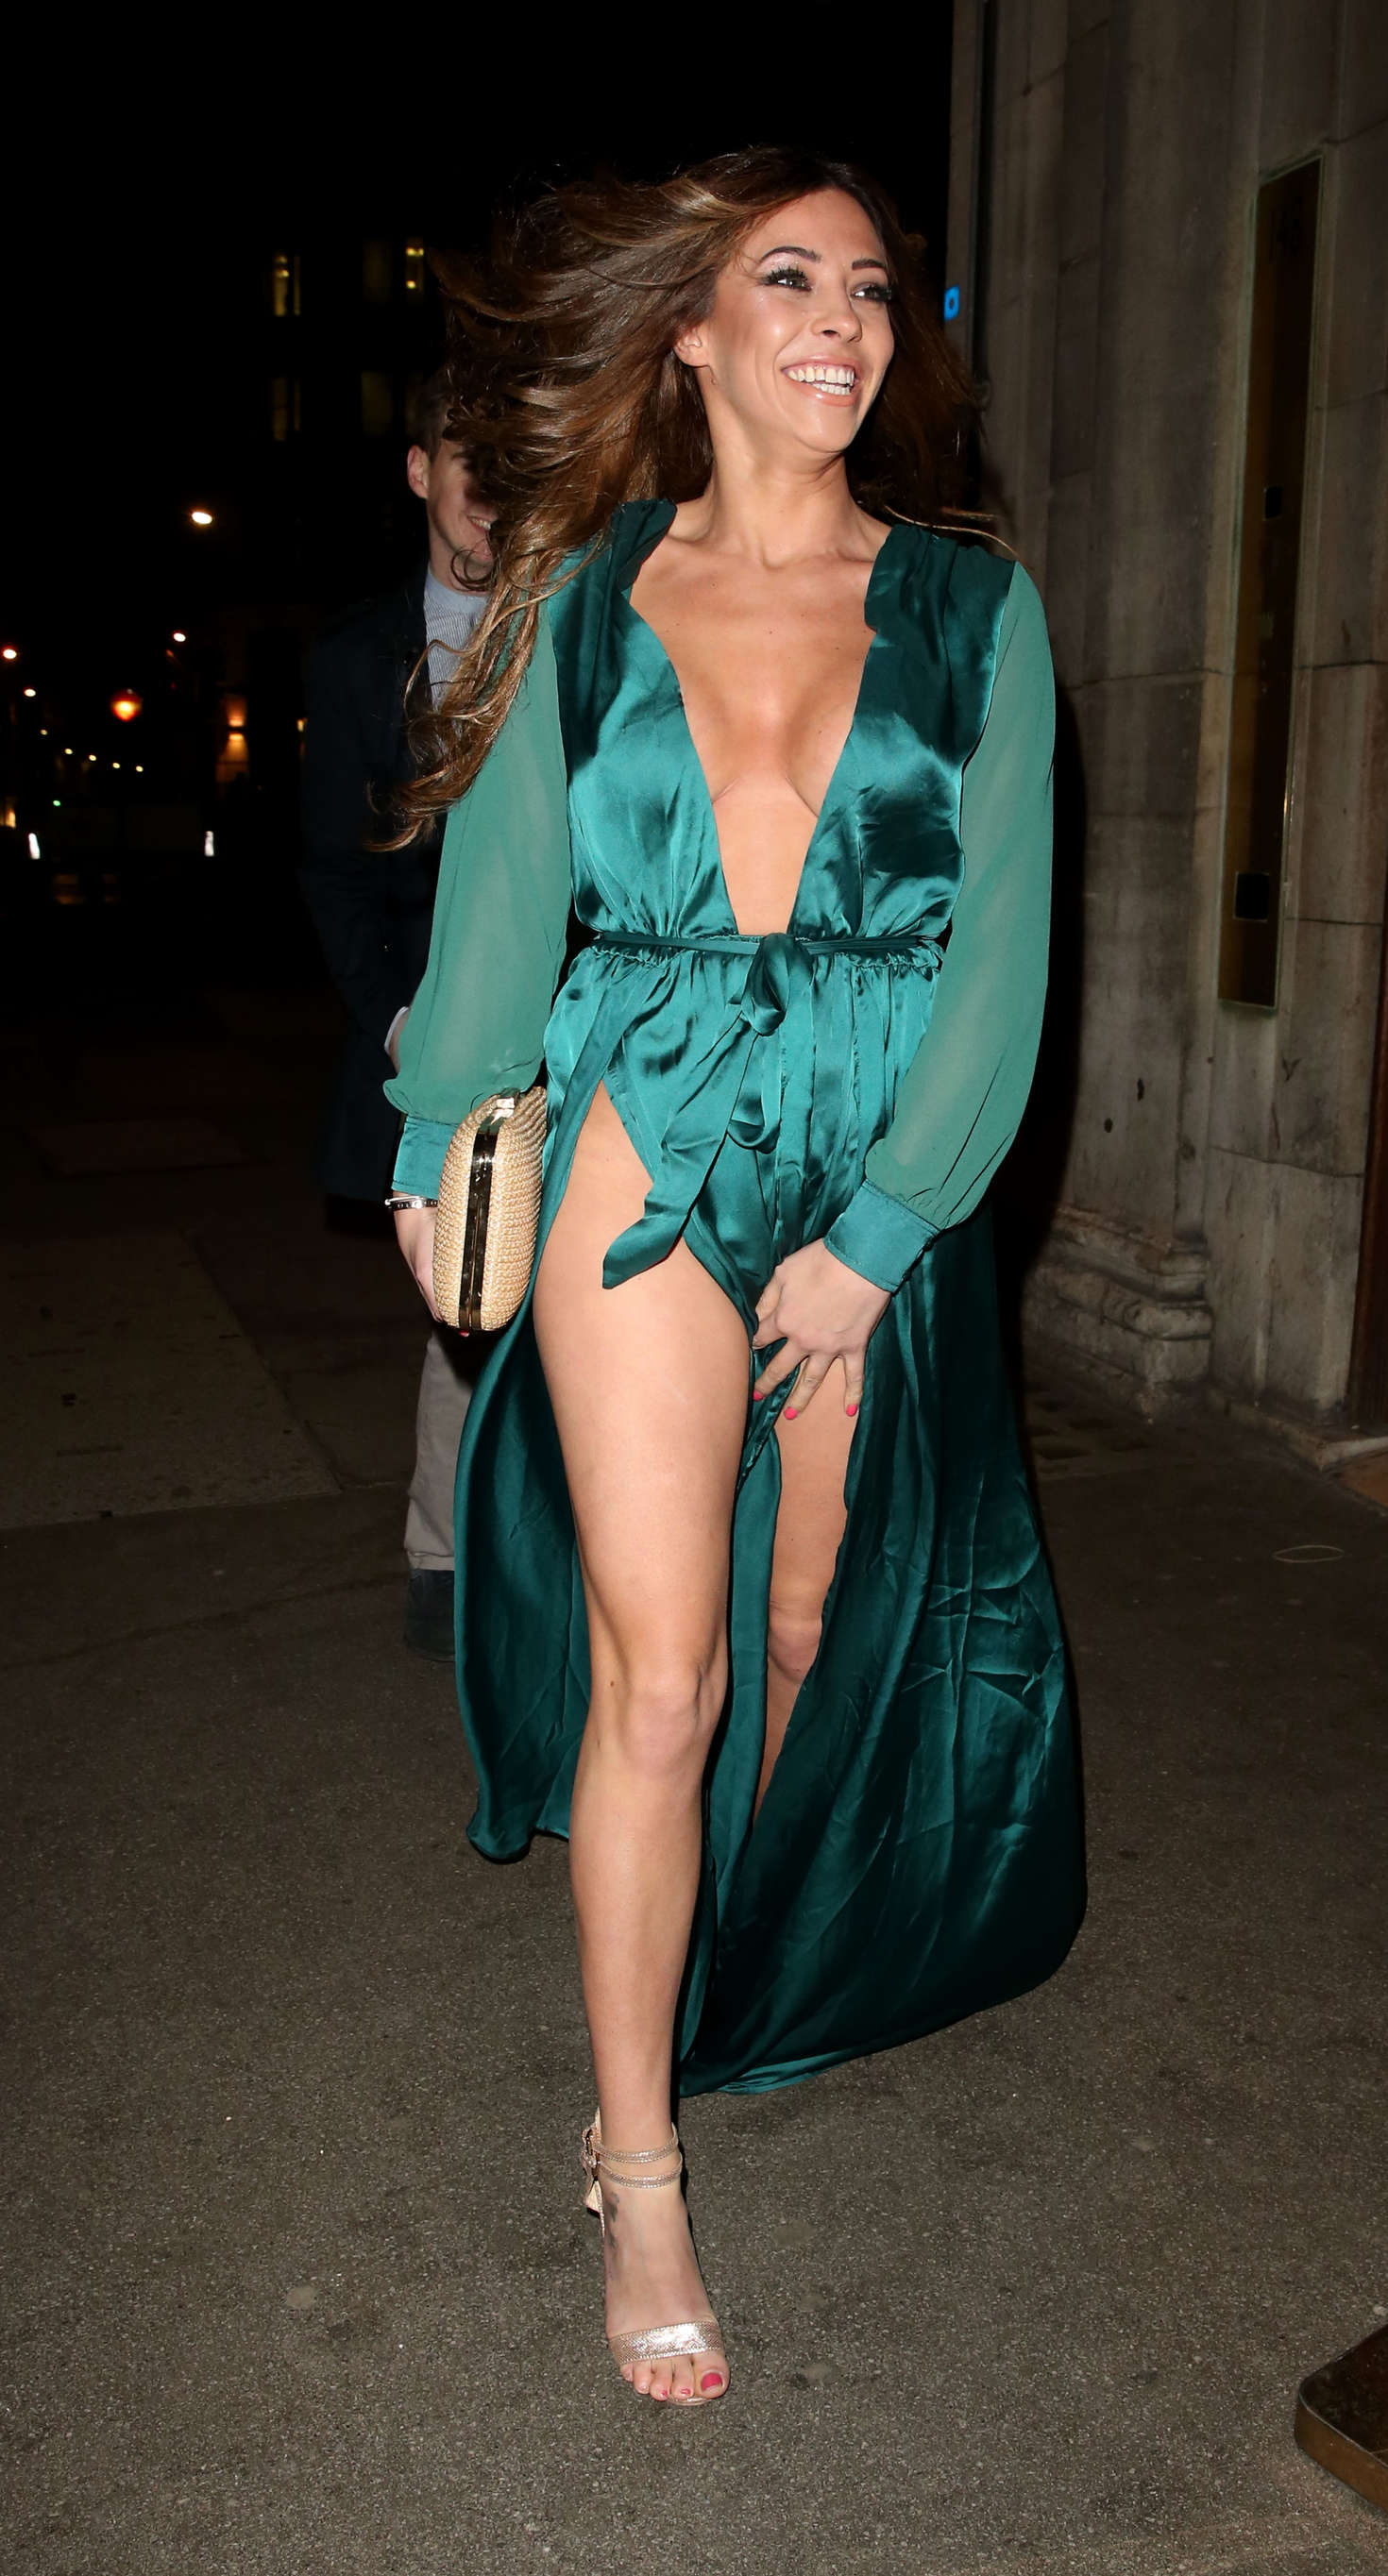 Pascal Craymer at Steam Rye Club in London